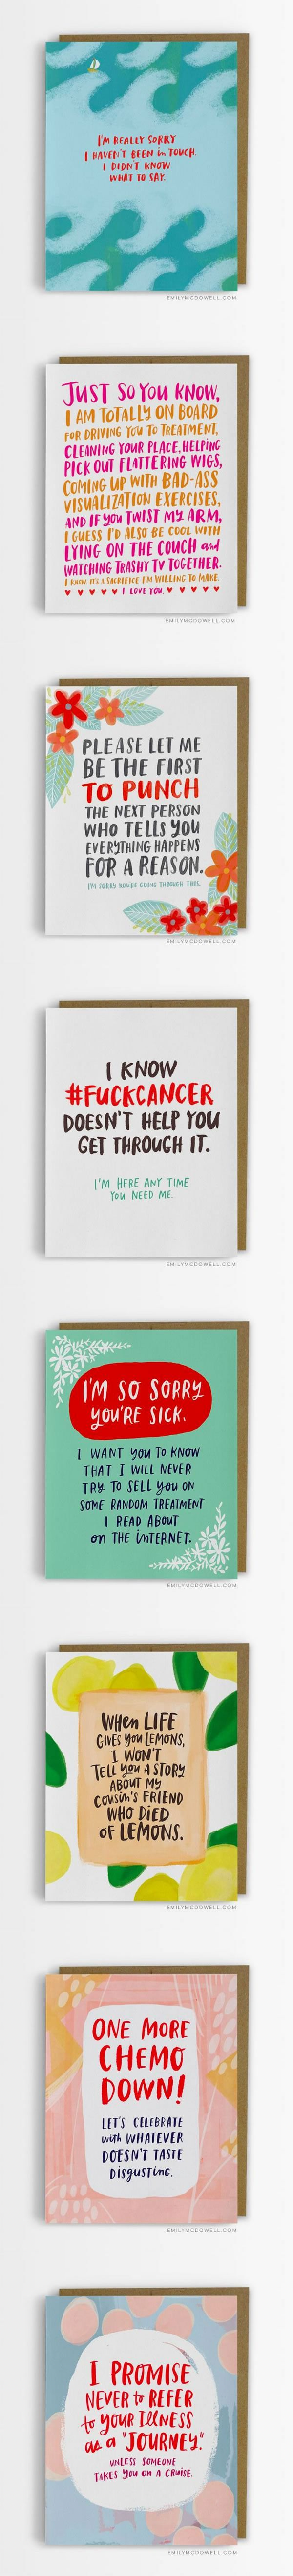 Cancer Survivor Emily McDowell Designs The Cards She Wishes She'd Received From Friends And Family